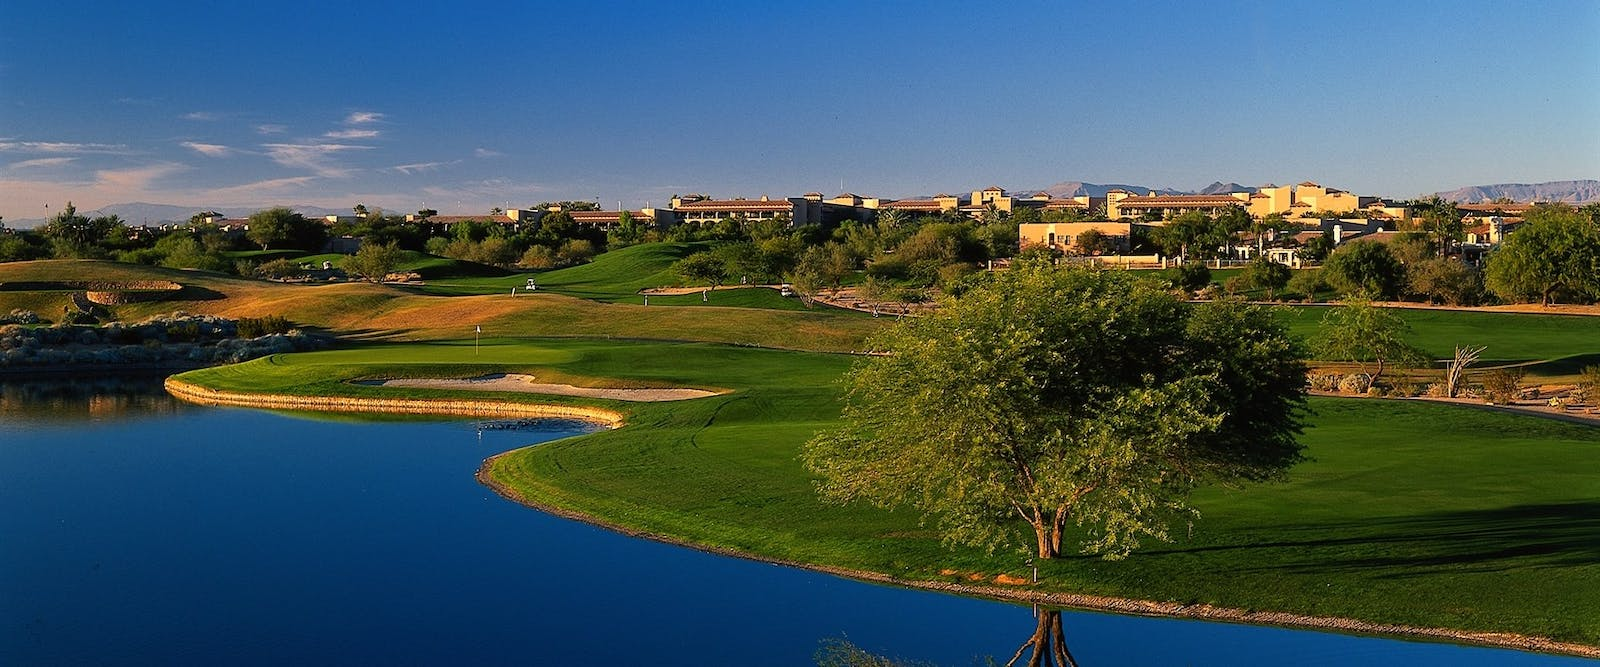 Golf Course At Fairmont Scottsdale, Arizona